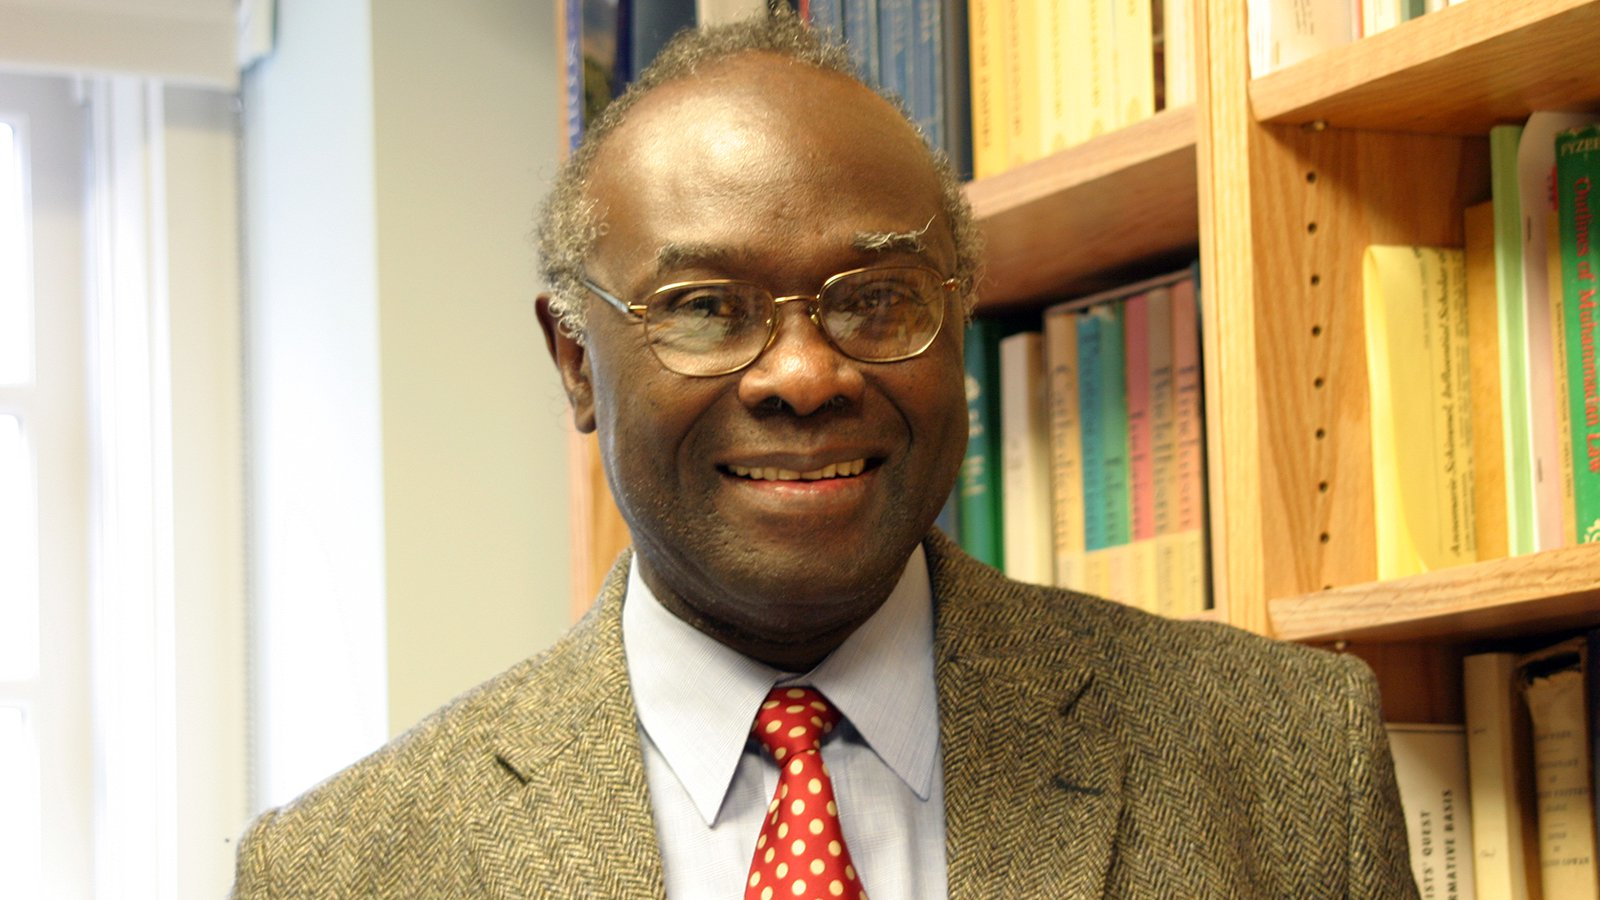 Remembering Lamin Sanneh